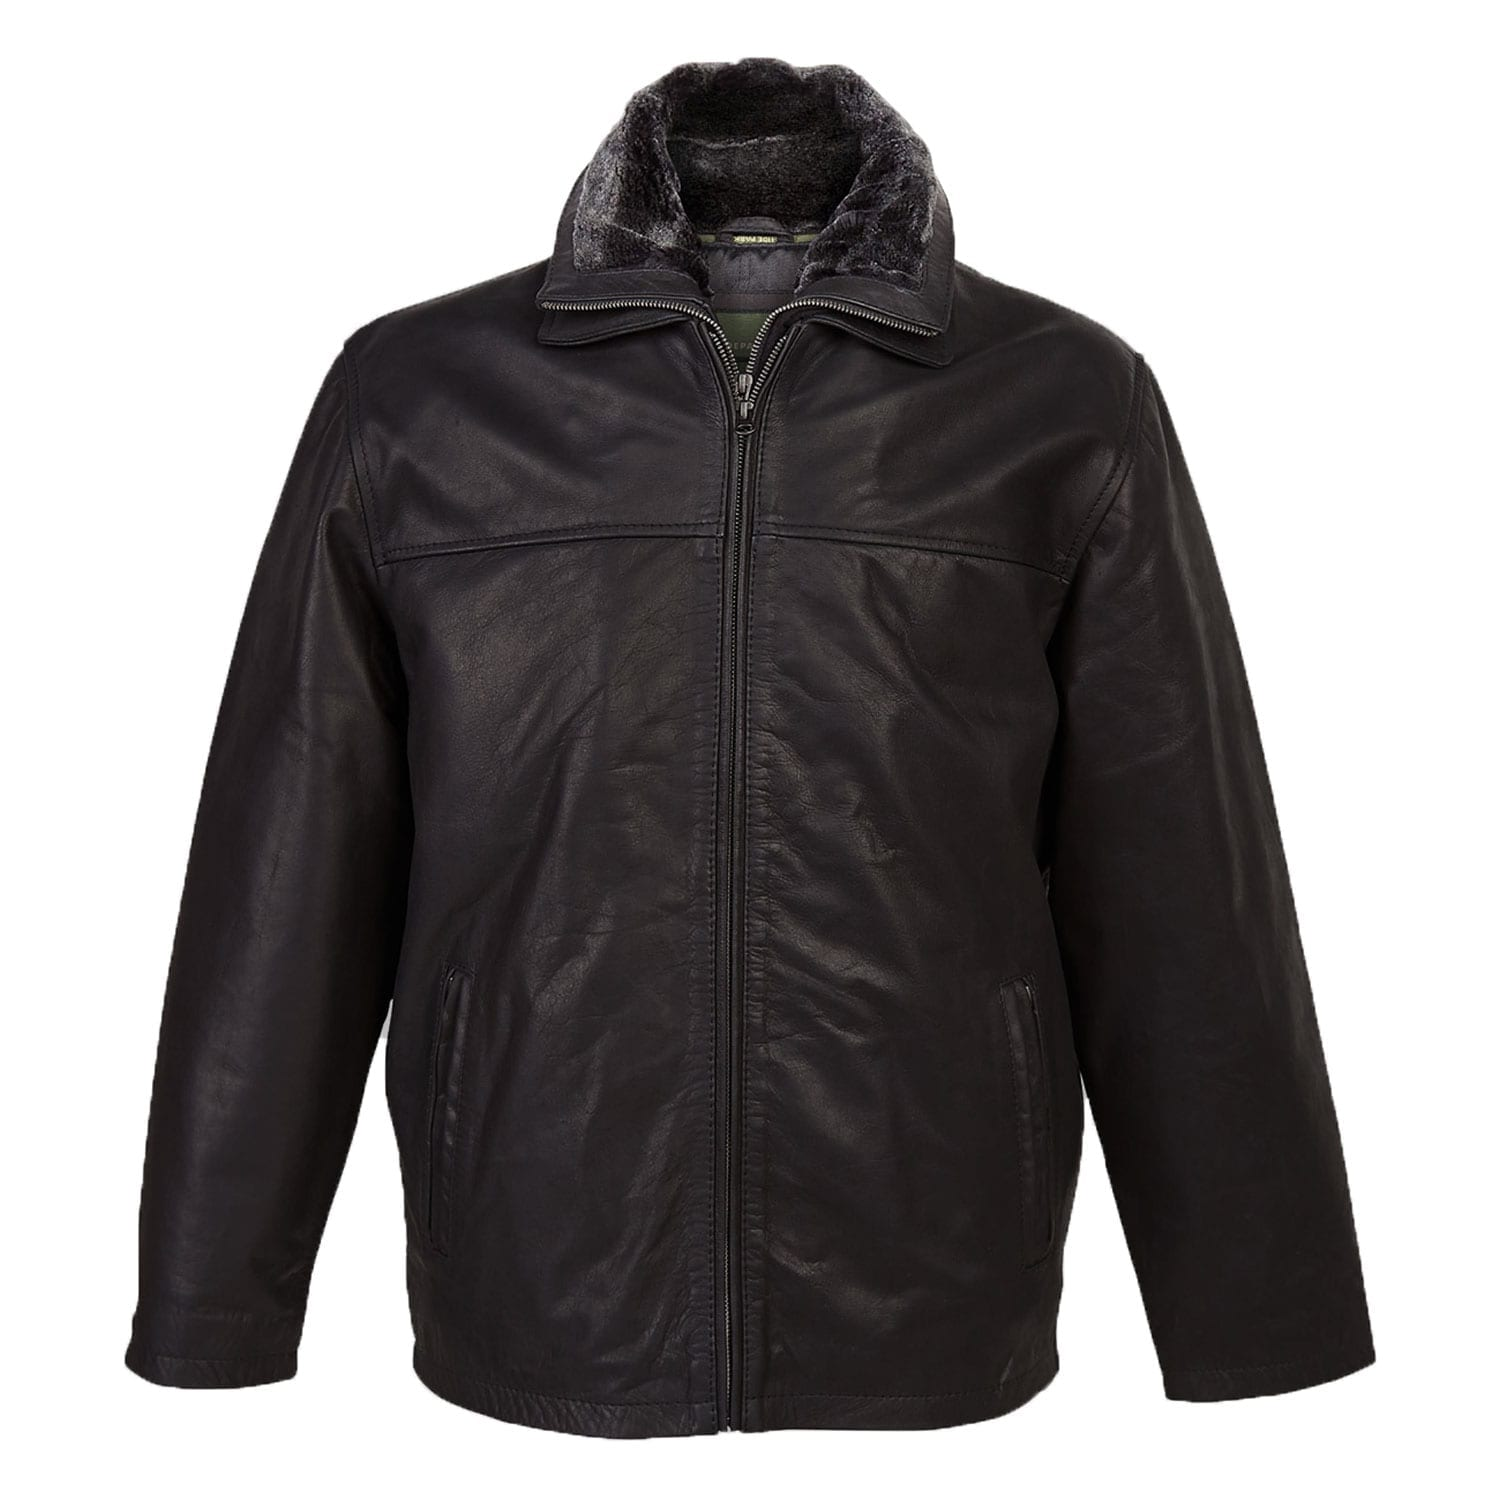 Mens Leather Jacket Bill Black